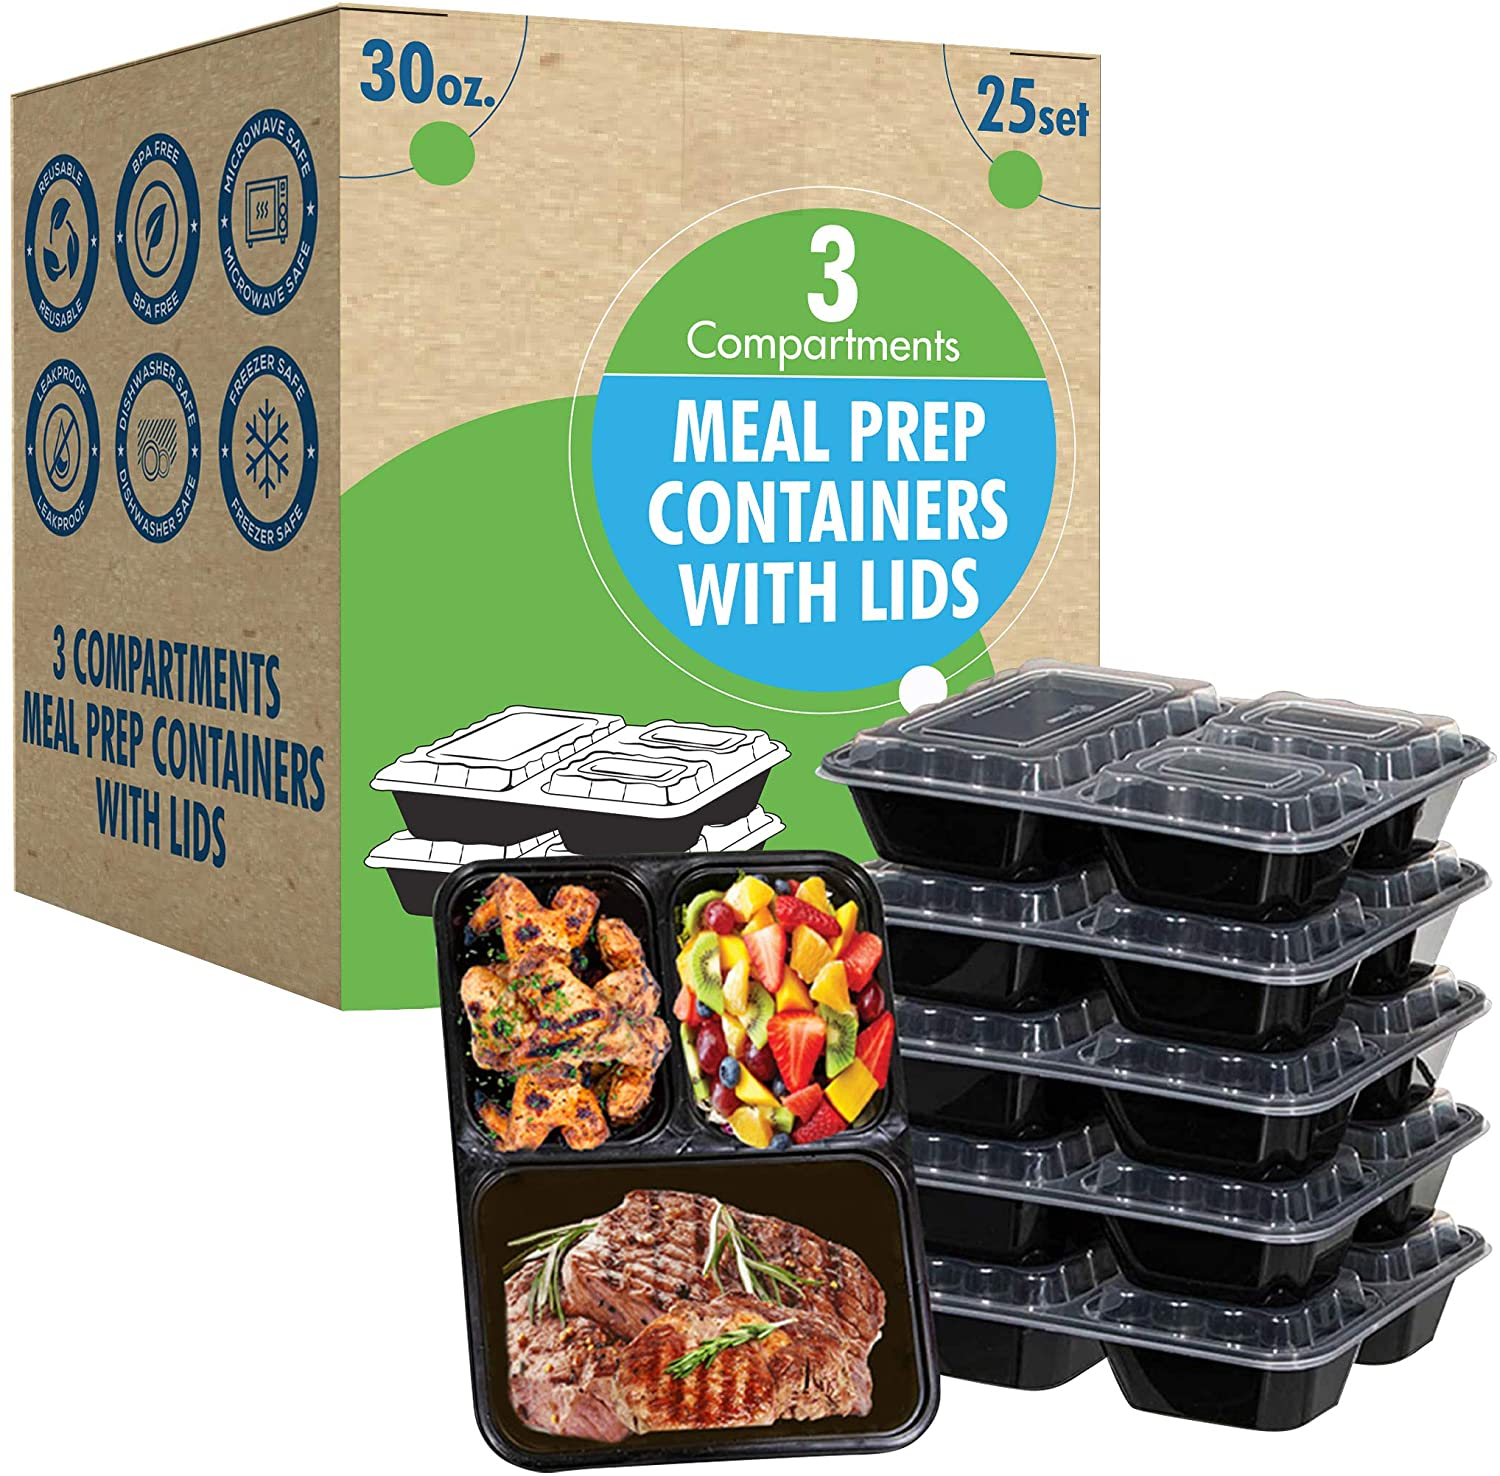 25 Sets [30oz 3 Compartment]. Prep Containers with Lids.Ideal-Lunch Containers, Food Prep Containers, Food Storage Bento Box, Portion Control | Stackable | Microwave | Dishwasher | Freezer Safe